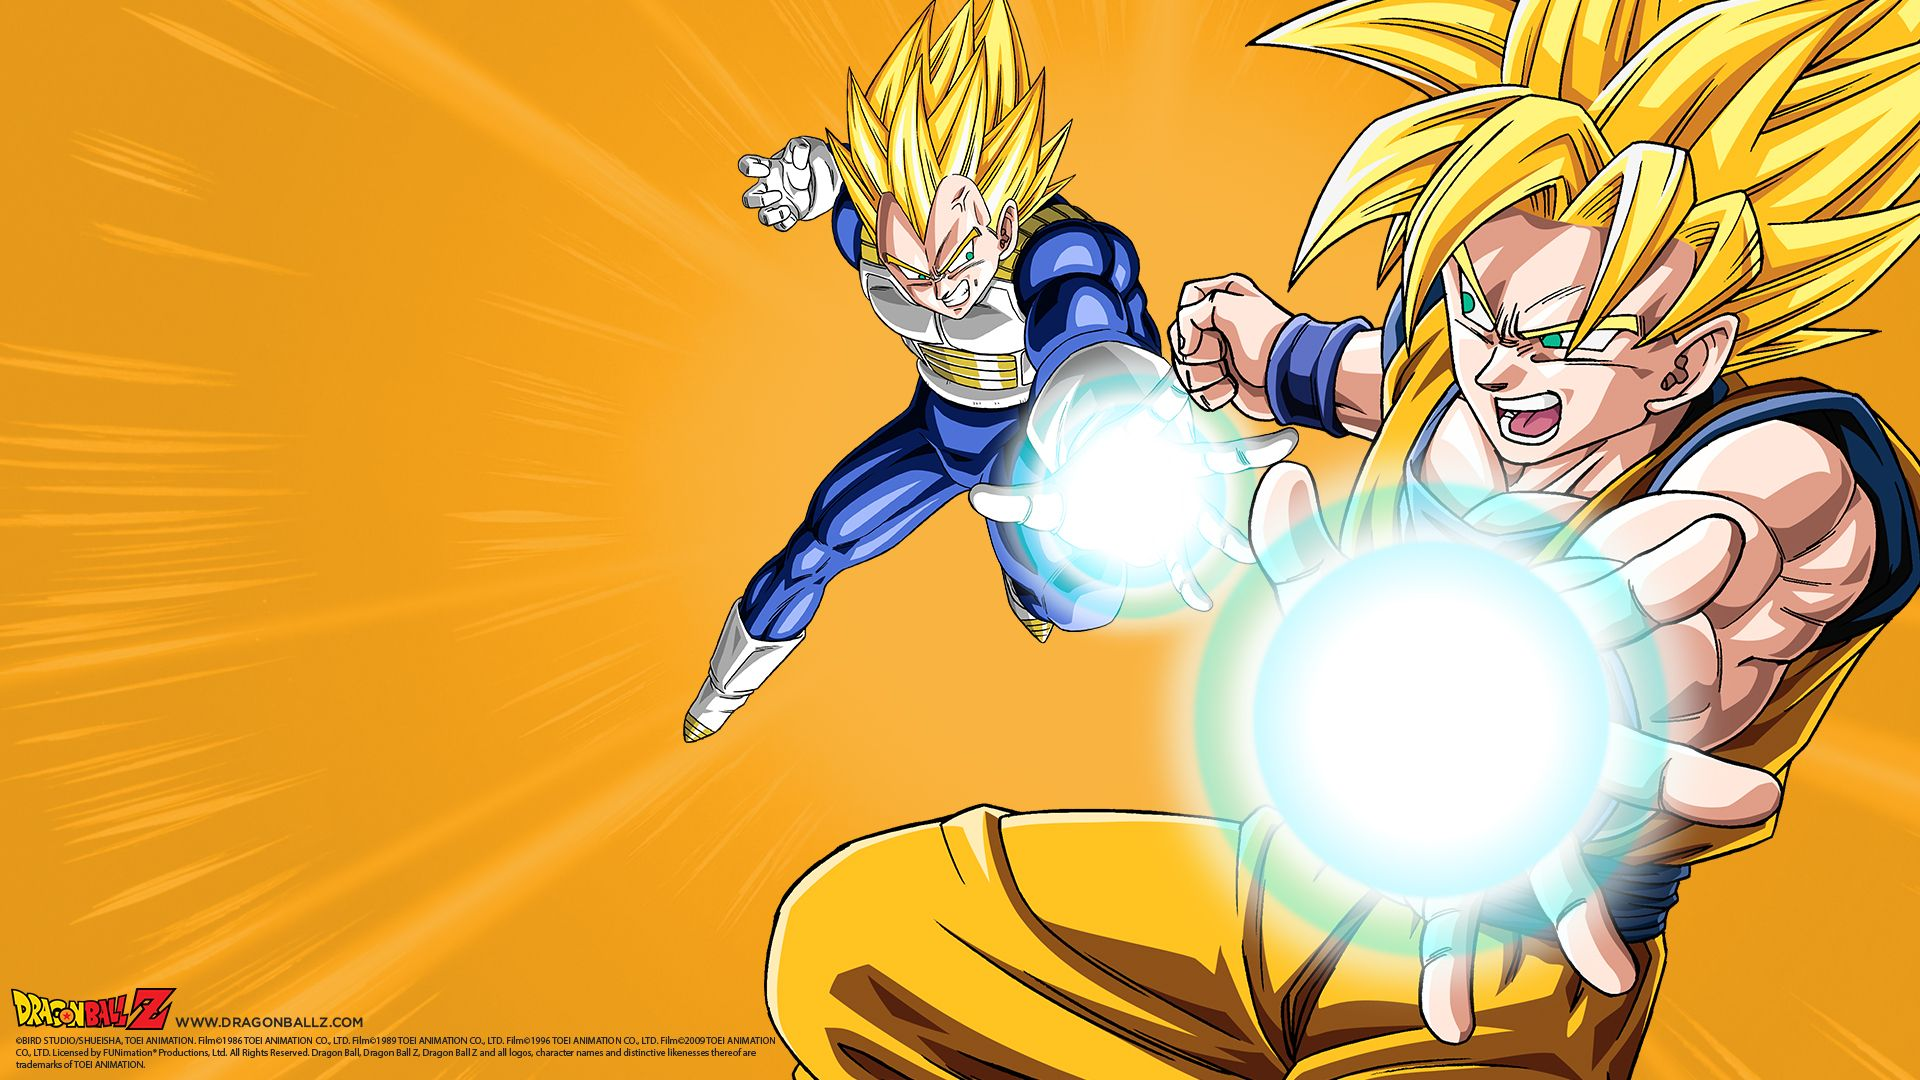 Dbz Animation Wallpapers Top Free Dbz Animation Backgrounds